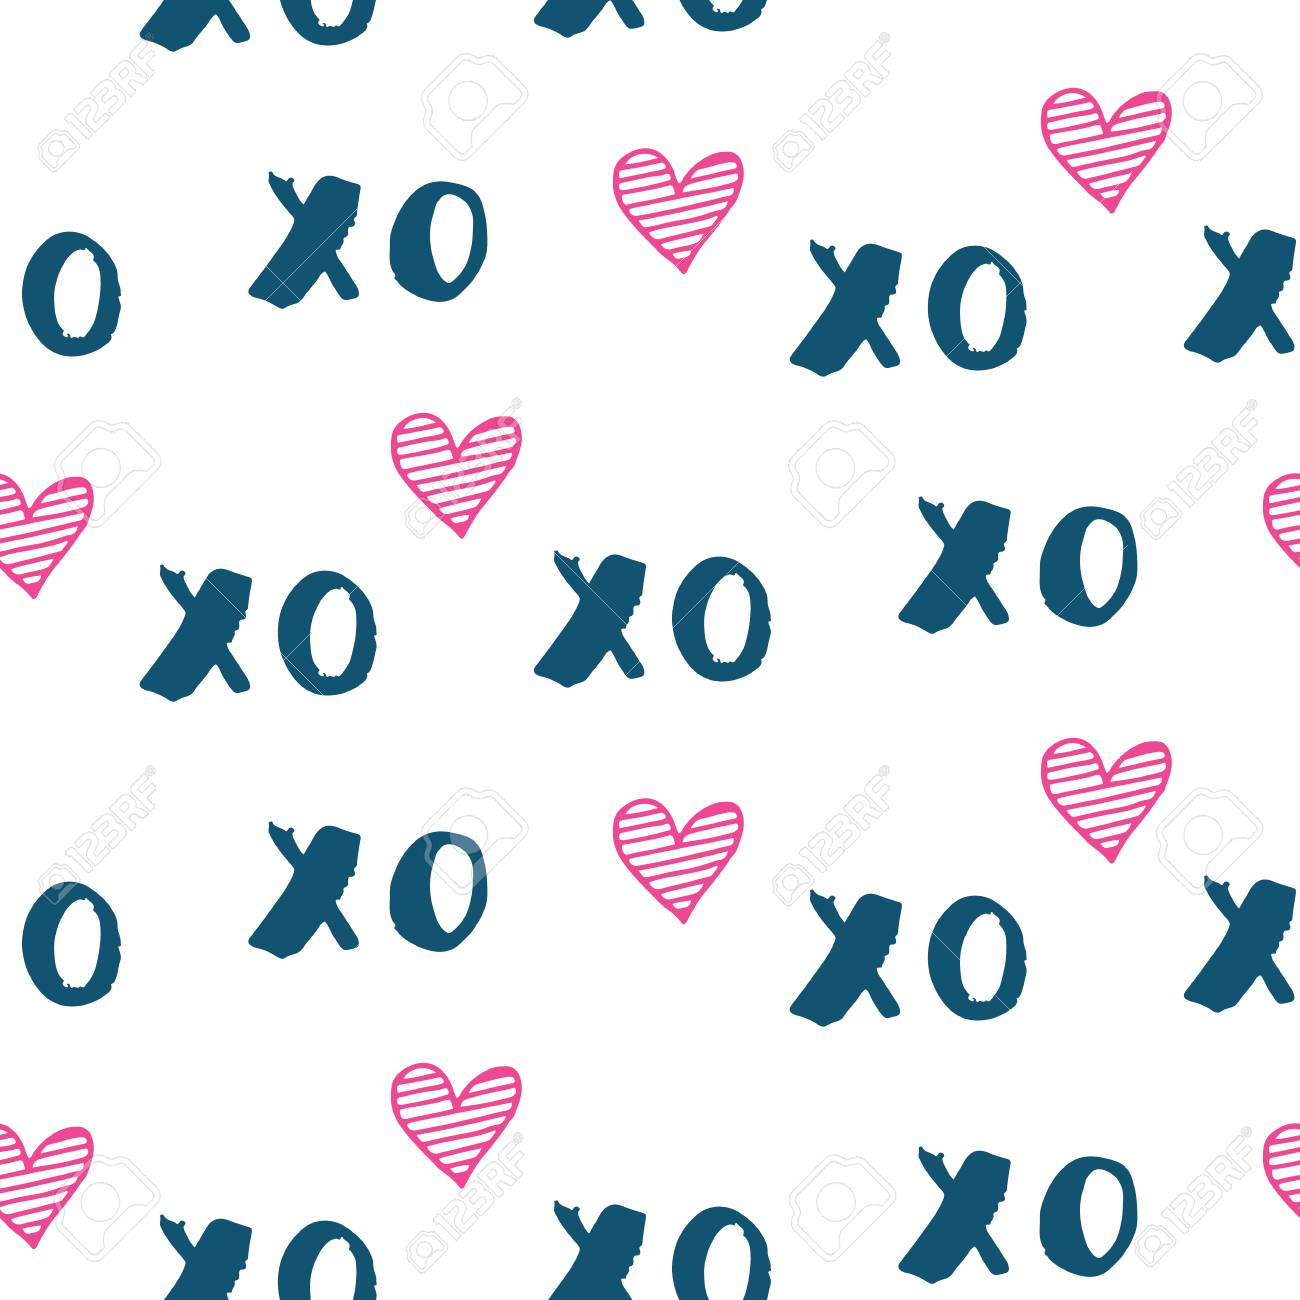 Hand Drawn Vector Seamless Pattern With Xoxo Hipster Symbols